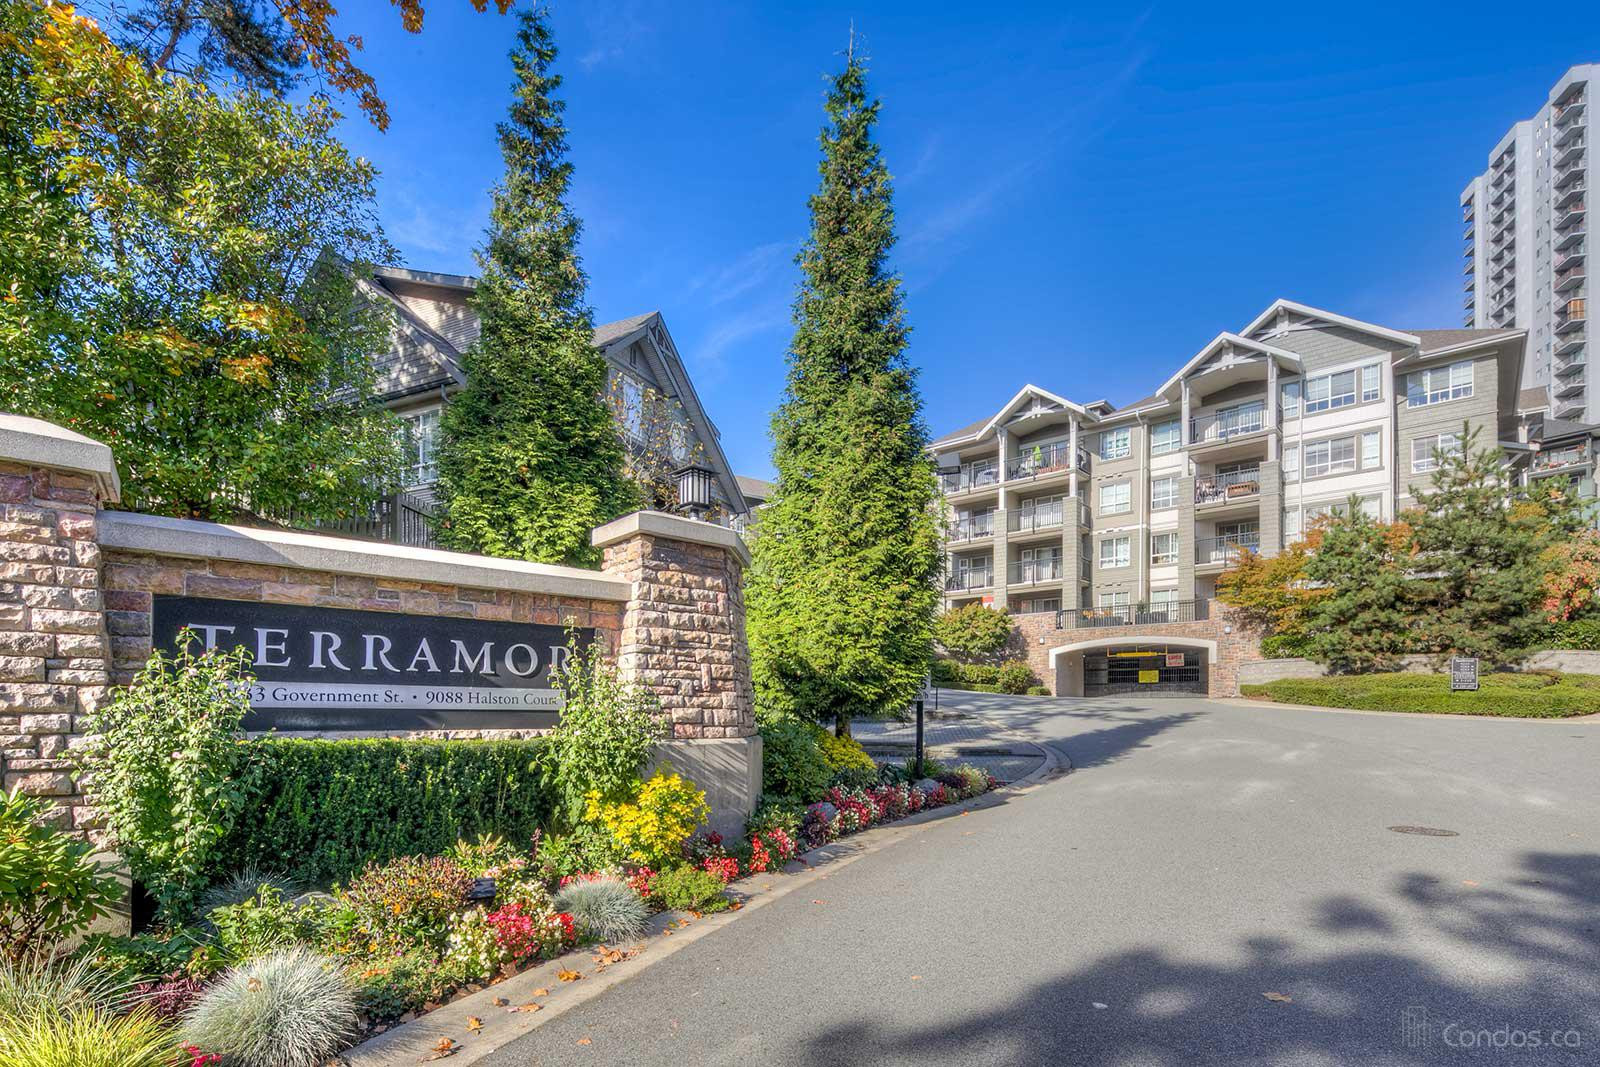 Terramor at 9133 Government St, Burnaby 0